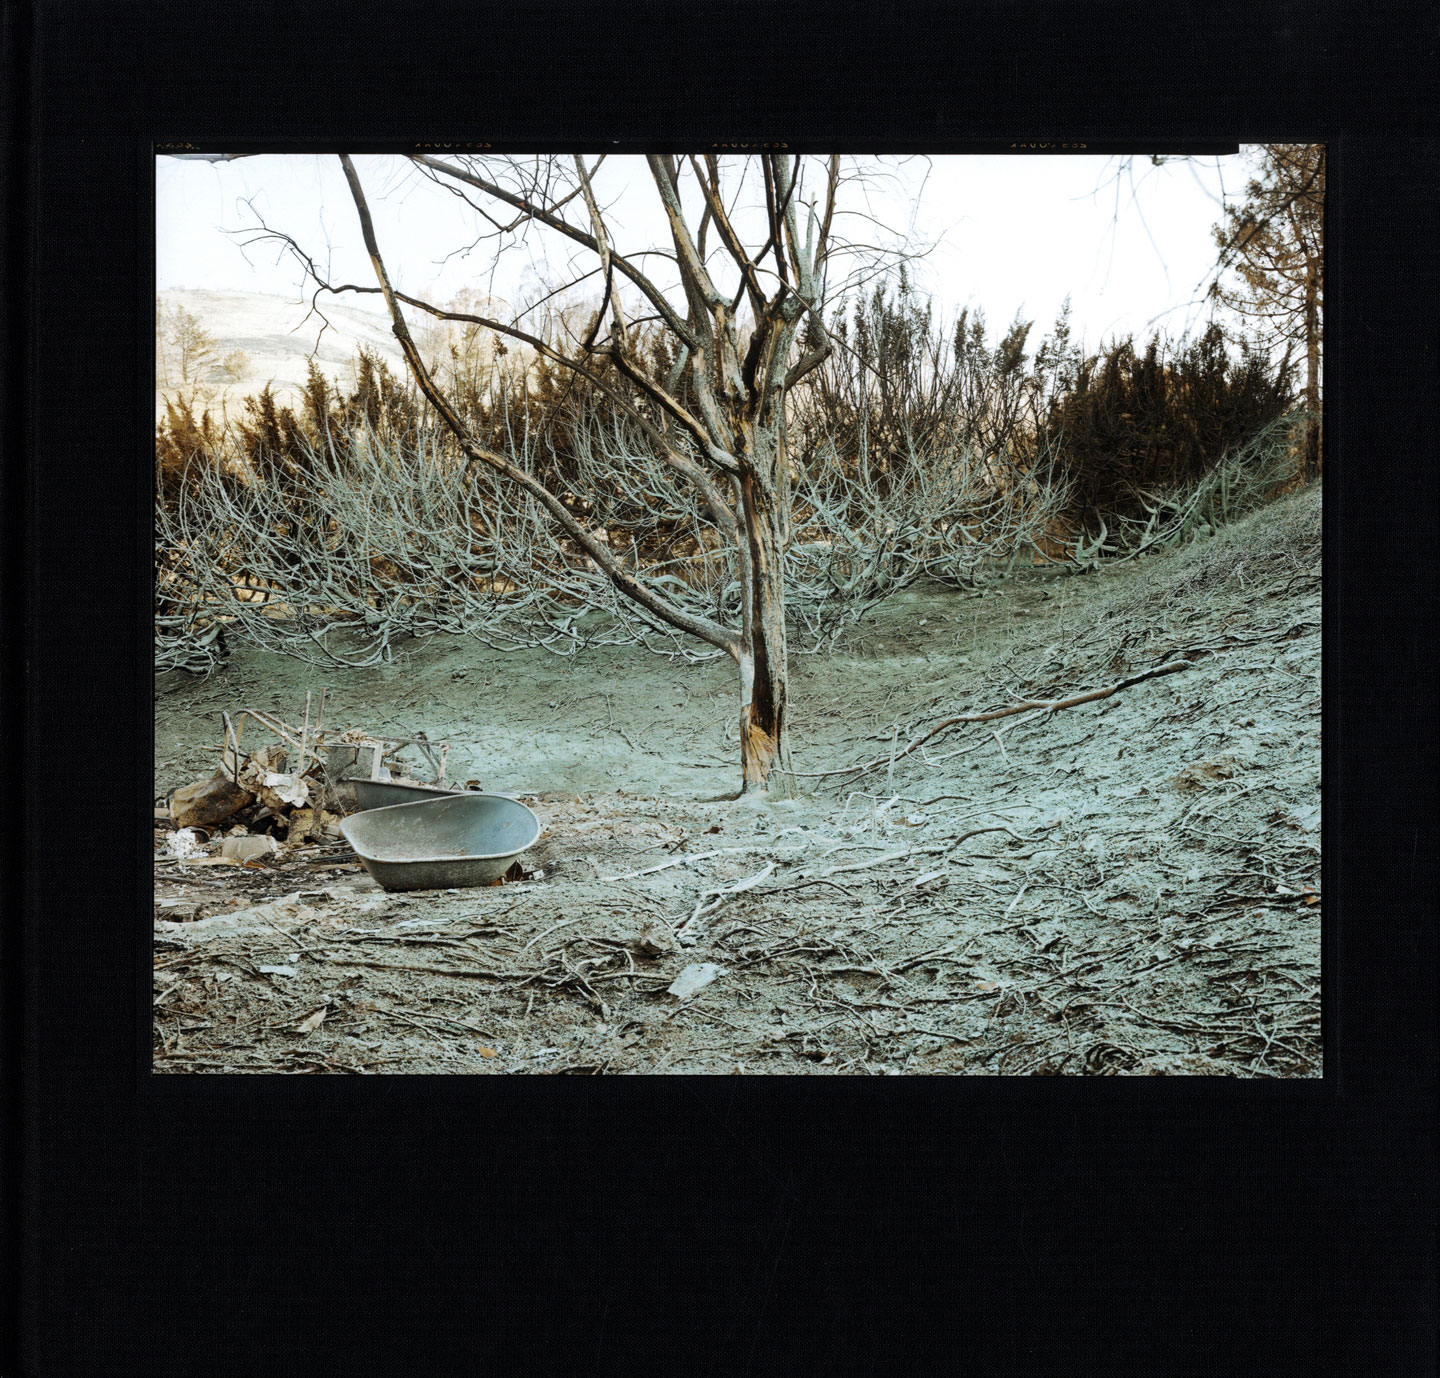 Blind Spot Series 02: Richard Misrach: 1991: The Oakland-Berkeley Fire Aftermath, Limited Edition (with Tipped-In Archival Pigment Print) [#2/100] [SIGNED]